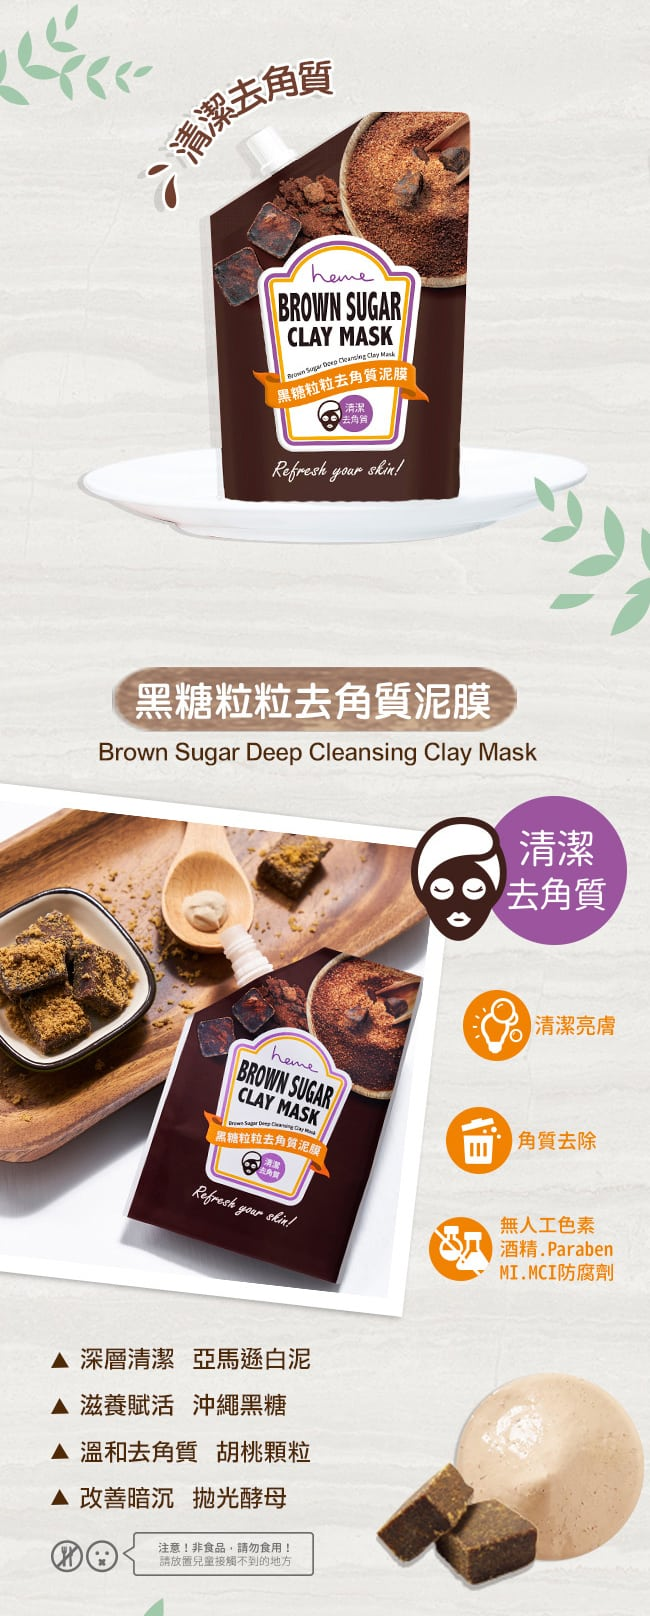 Brown Sugar Deep Cleansing Clay Mask - Feature 3